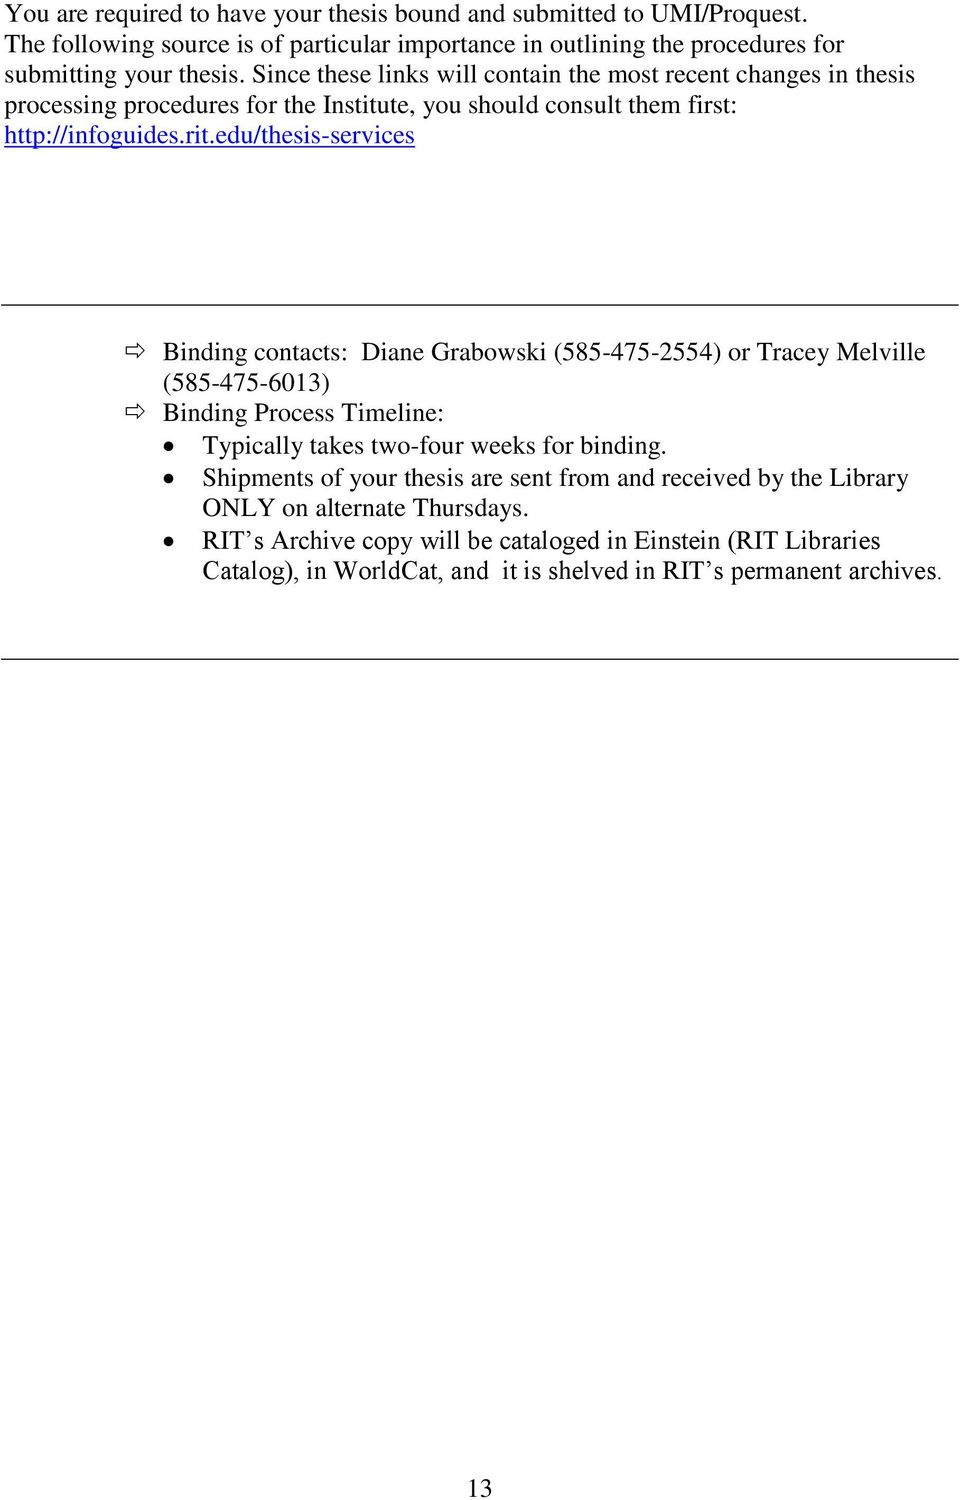 edu/thesis-services Binding contacts: Diane Grabowski (585-475-2554) or Tracey Melville (585-475-6013) Binding Process Timeline: Typically takes two-four weeks for binding.